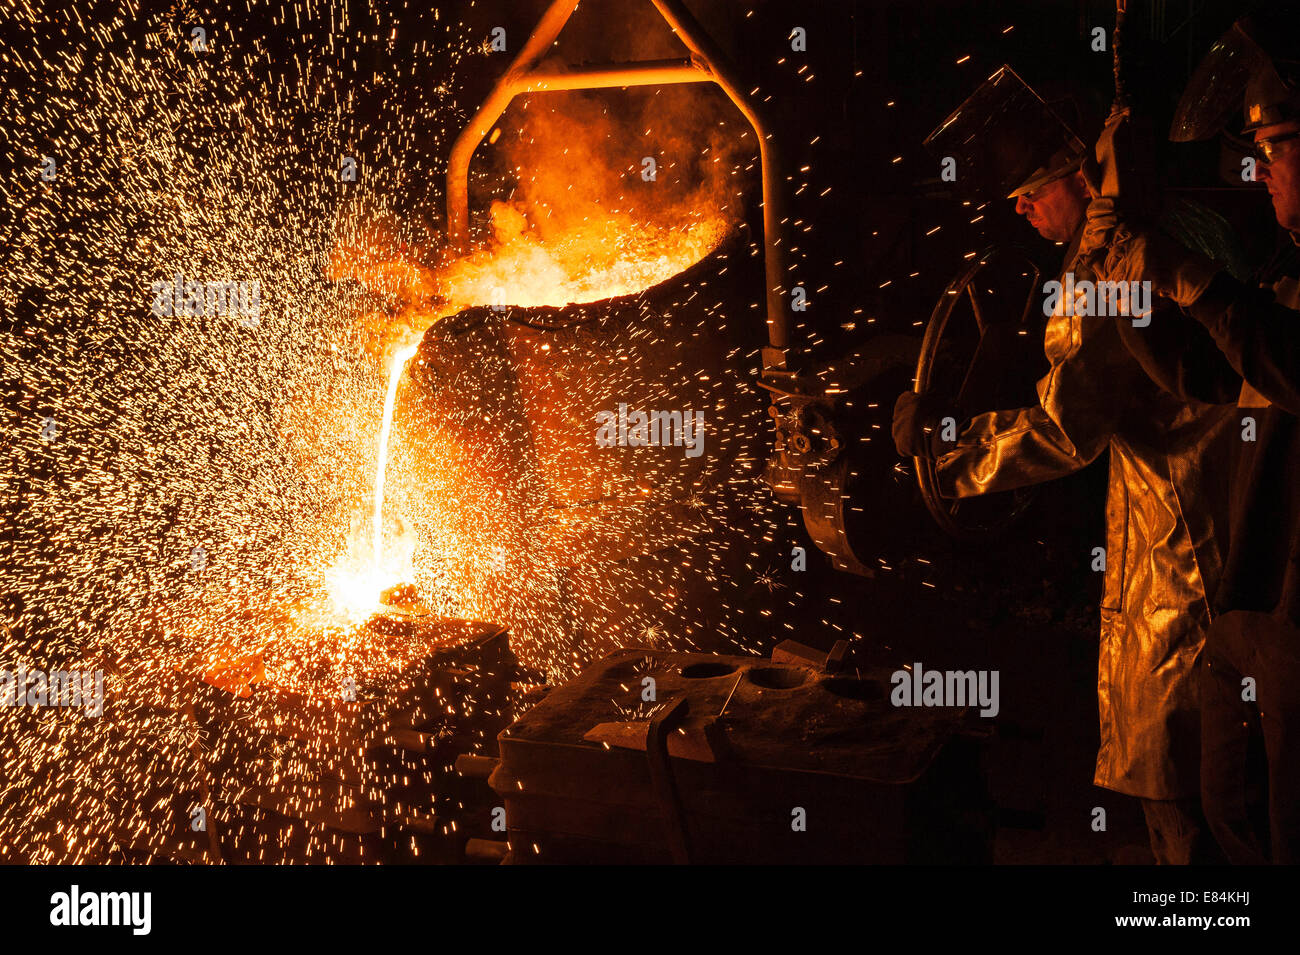 Molten high heat stainless steel is poured into into sand casting molds. - Stock Image